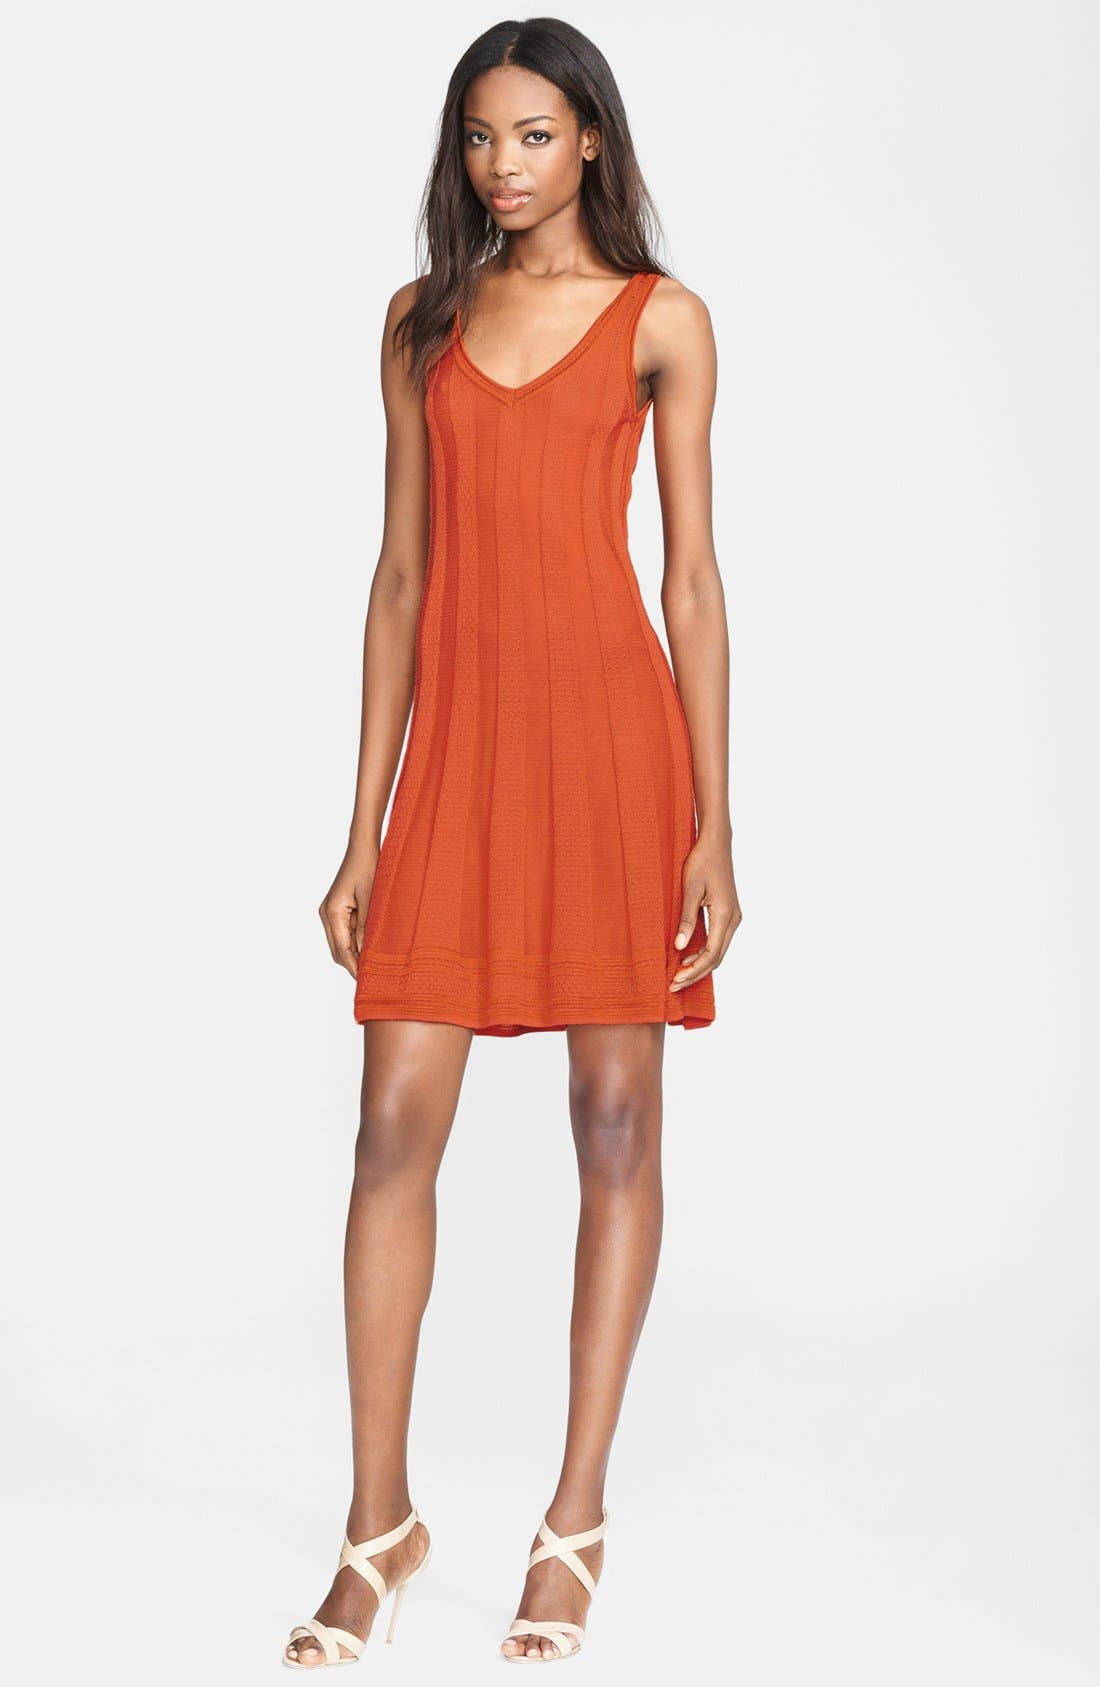 Main Image - M Missoni Sleeveless V-Neck Knit Dress